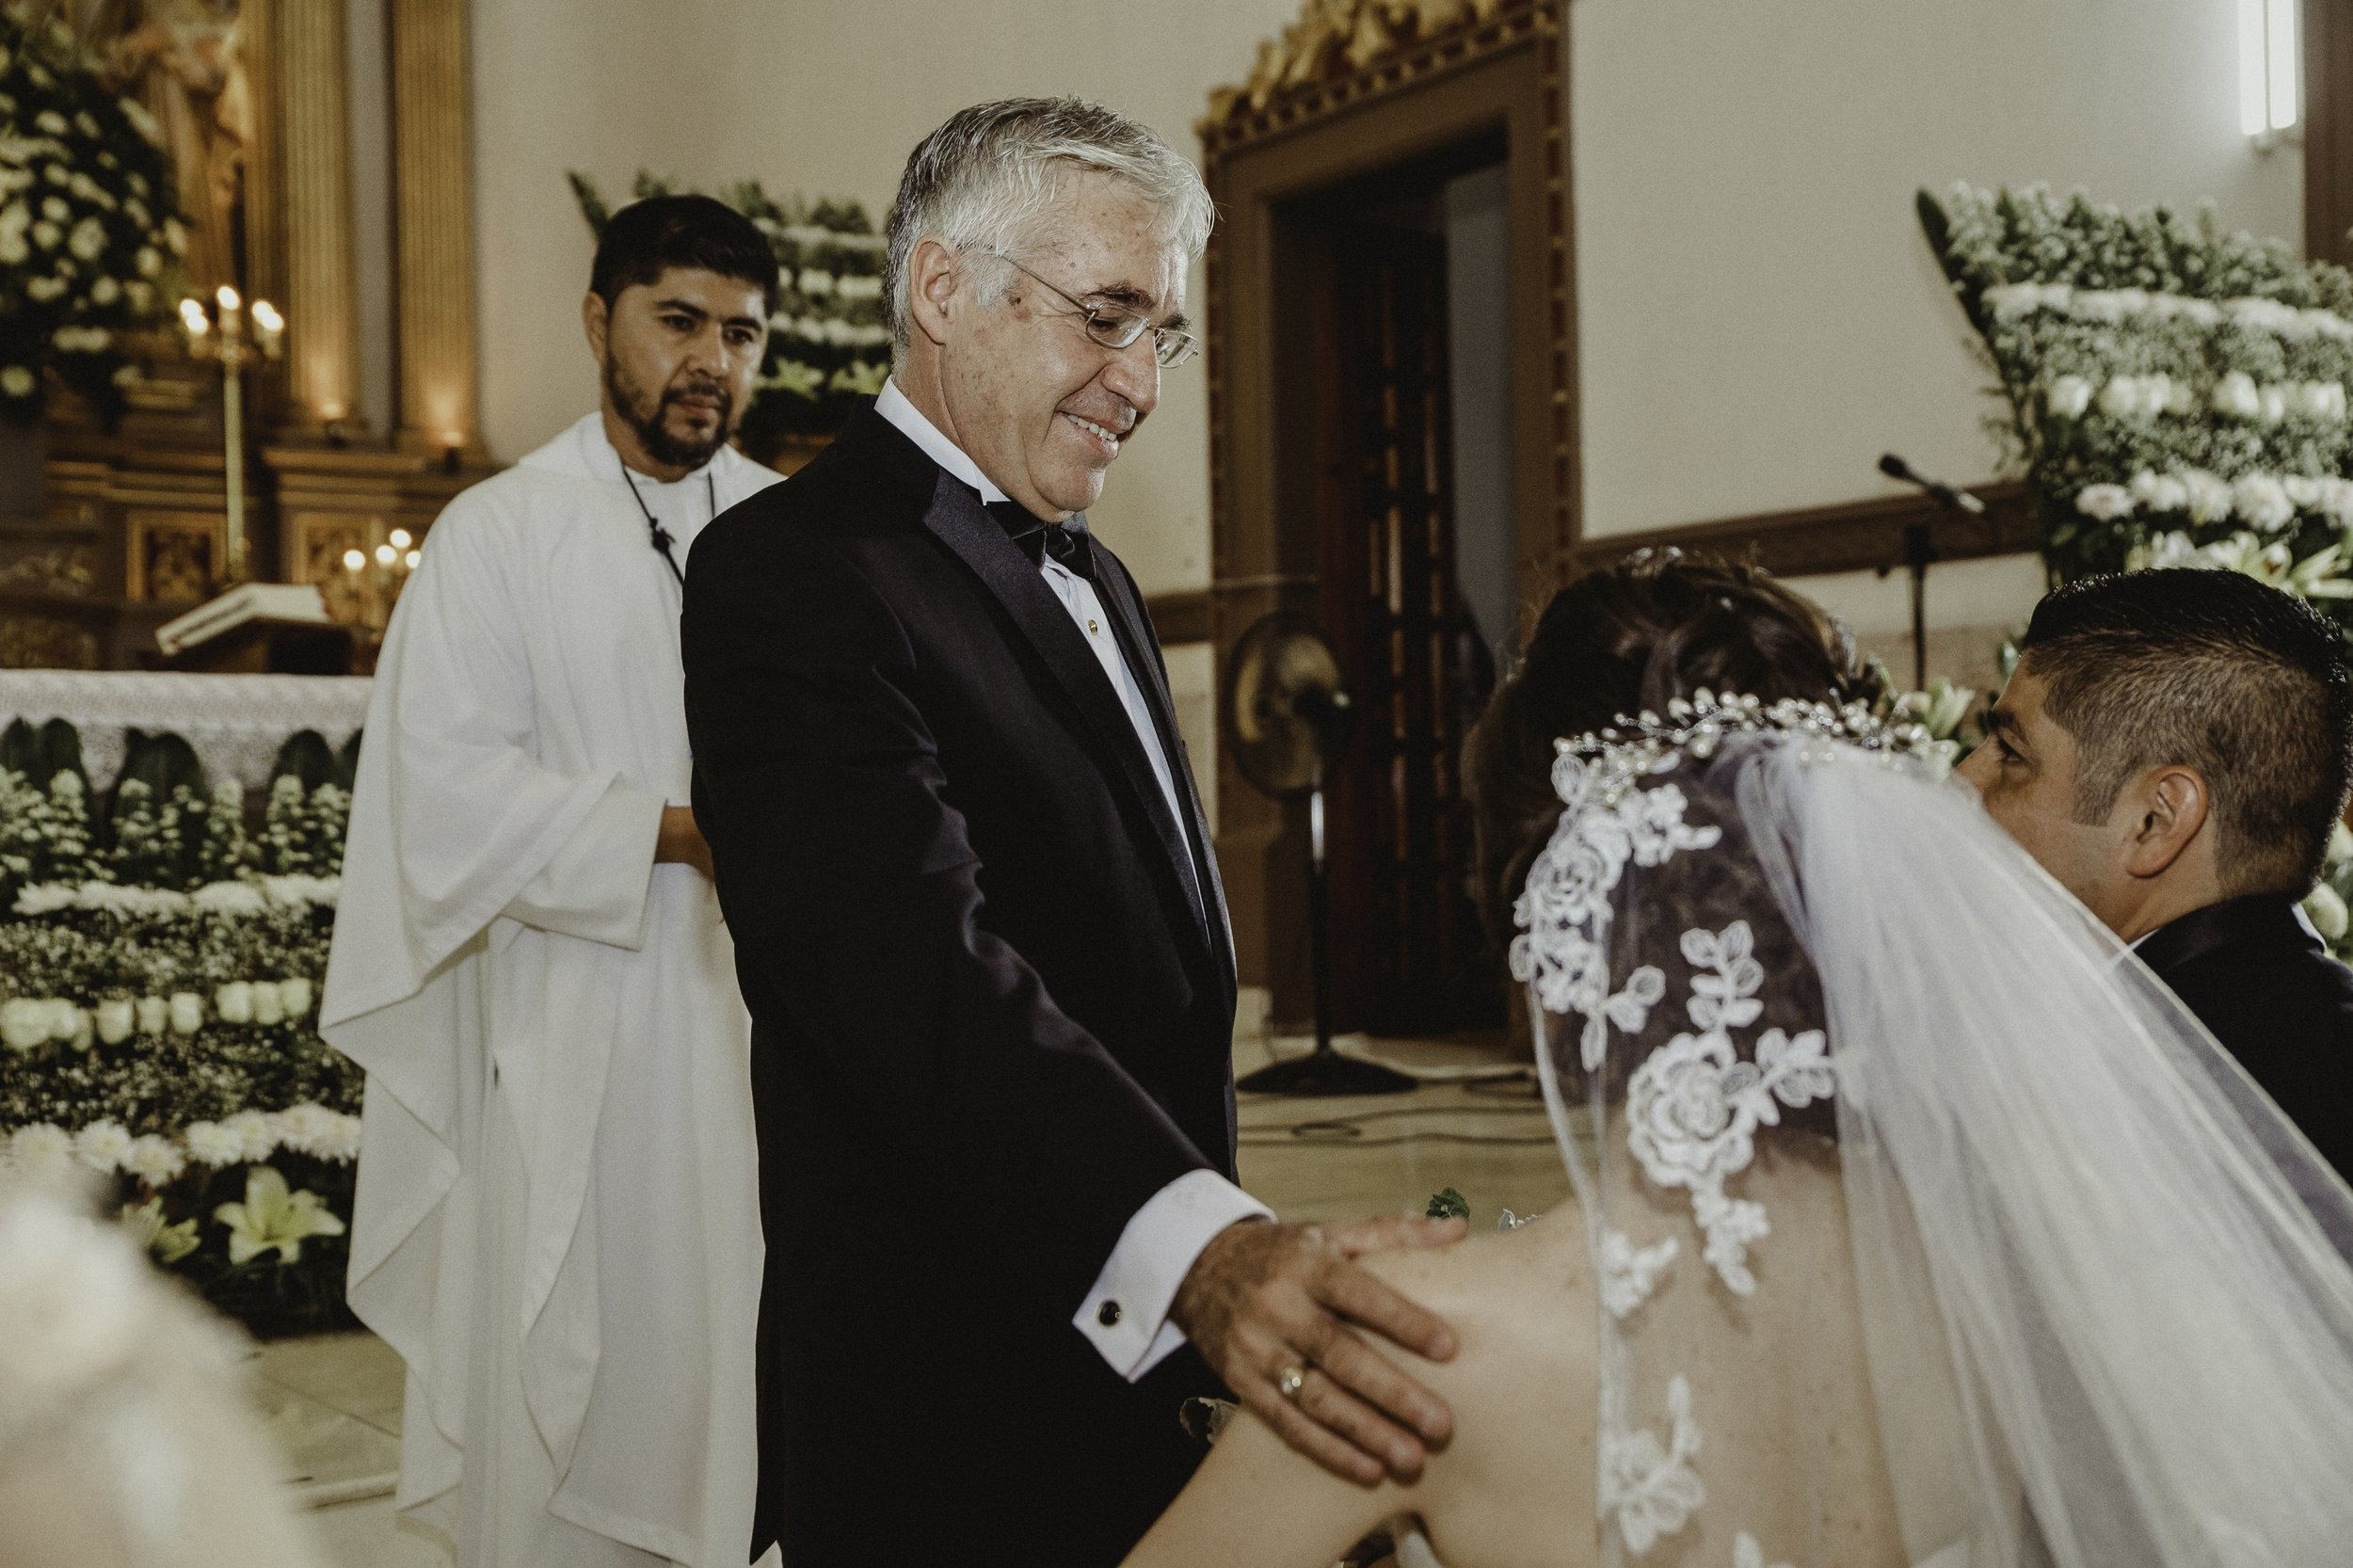 ODEMARIS_DANIEL-52carotida_photographer_boda_wedding.jpg